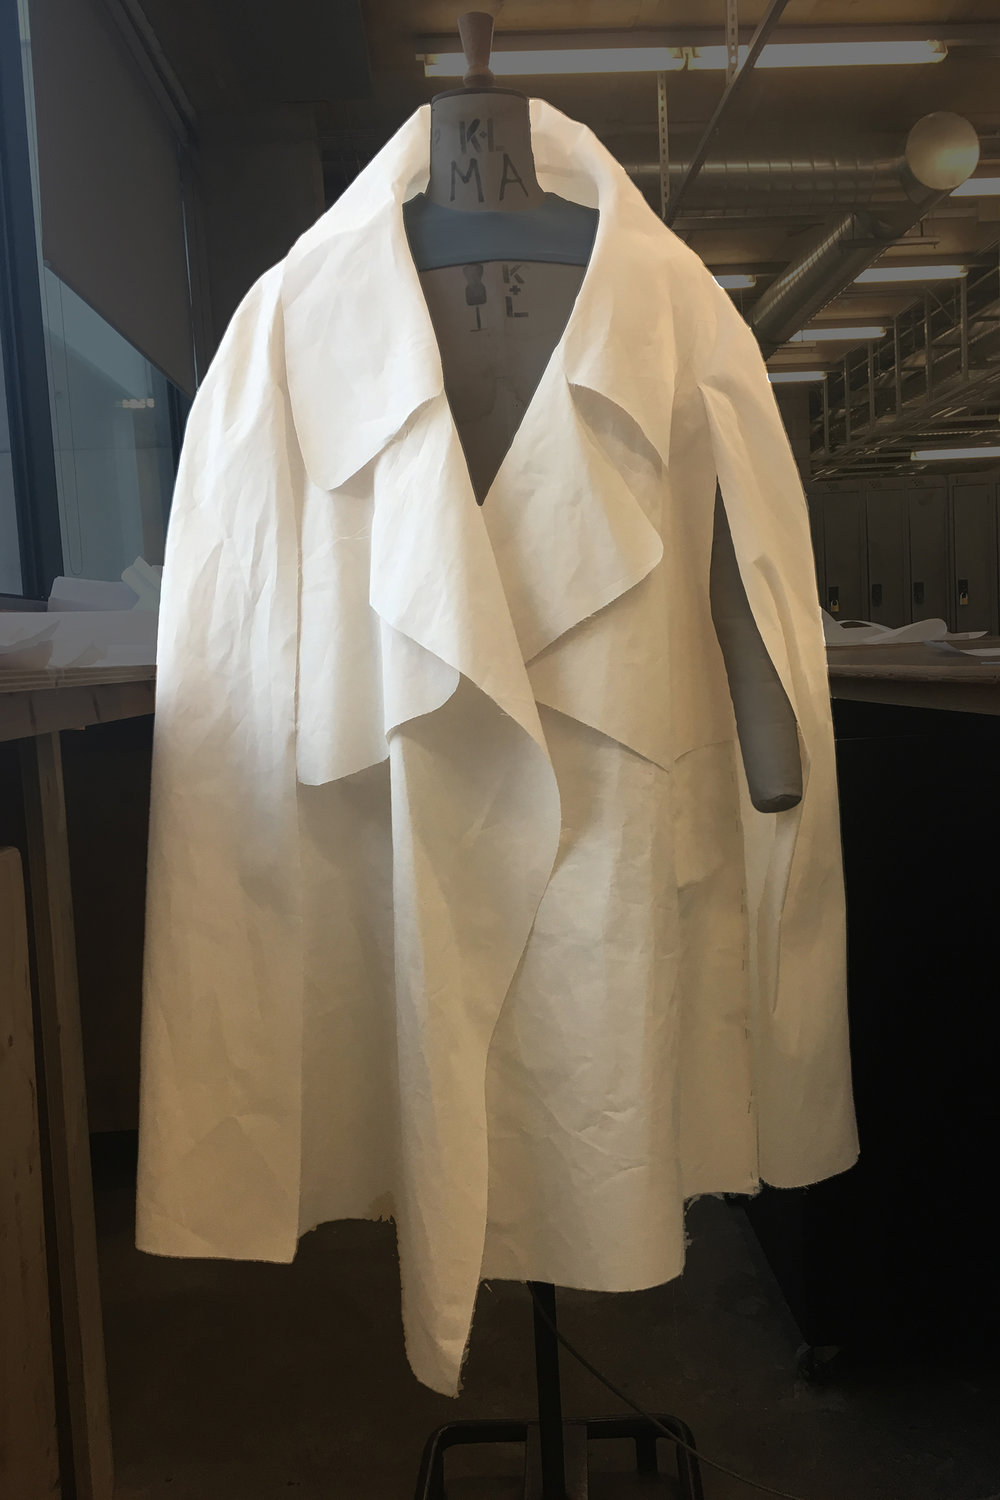 PROCESS: turning the trench's sleeve into a cape's hidden armhole